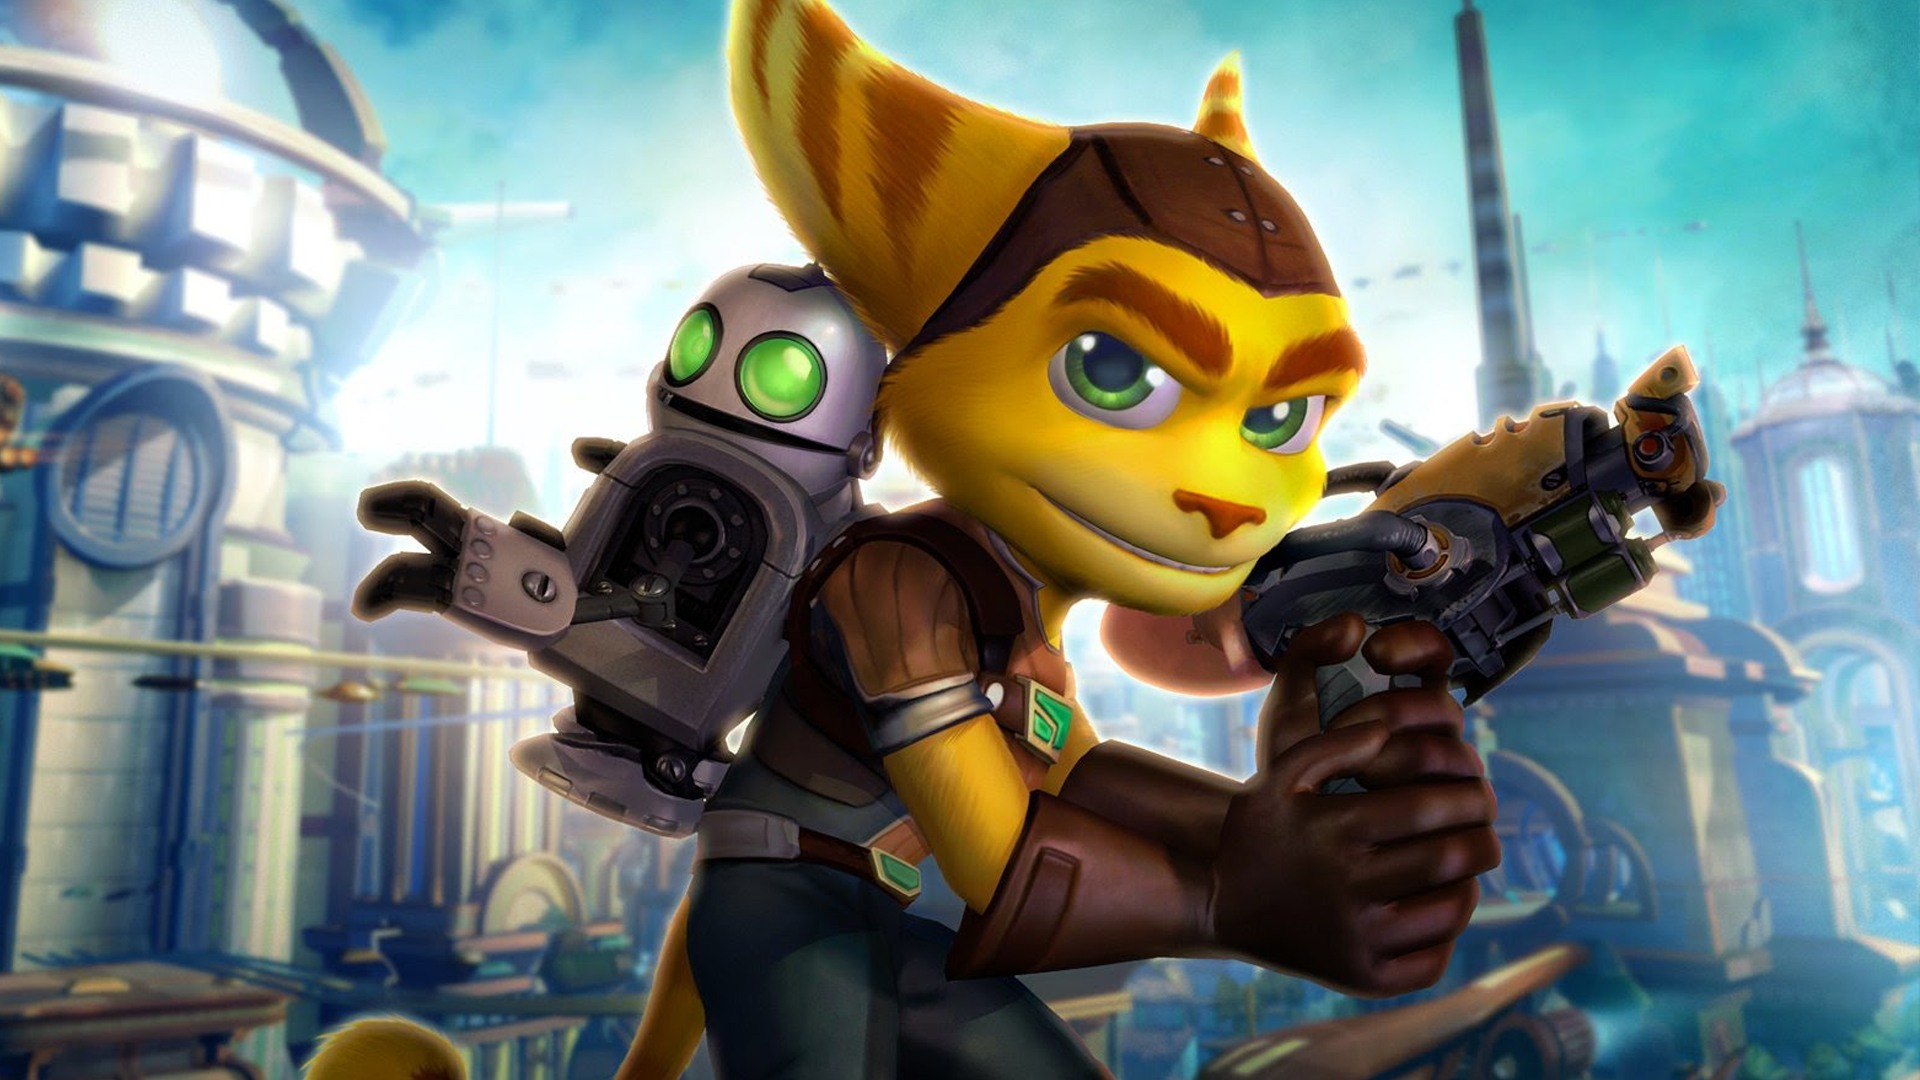 ratchet-clank-ps4-game-review-bagogames-featured